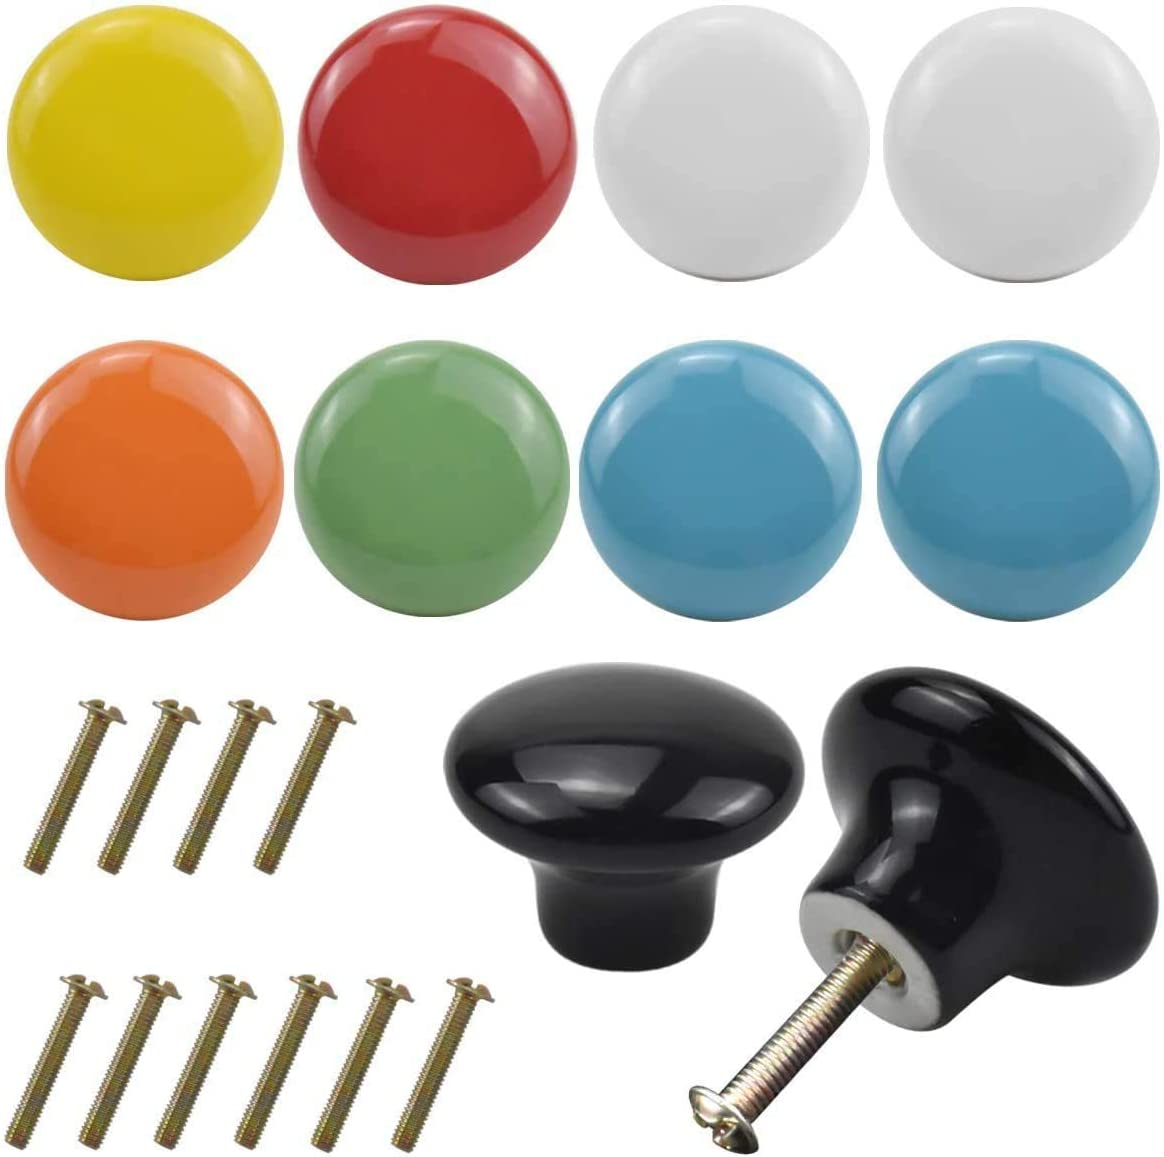 Kissral 10PCS Colorful Cabinet Door Knobs, 32mm Round Ceramic Drawer Pull Handle, Cute Kitchen Cabinet Cupboard Drawer Door Knobs Set, Door Furniture Cabinet Knobs for Kids Children Bedroom Home